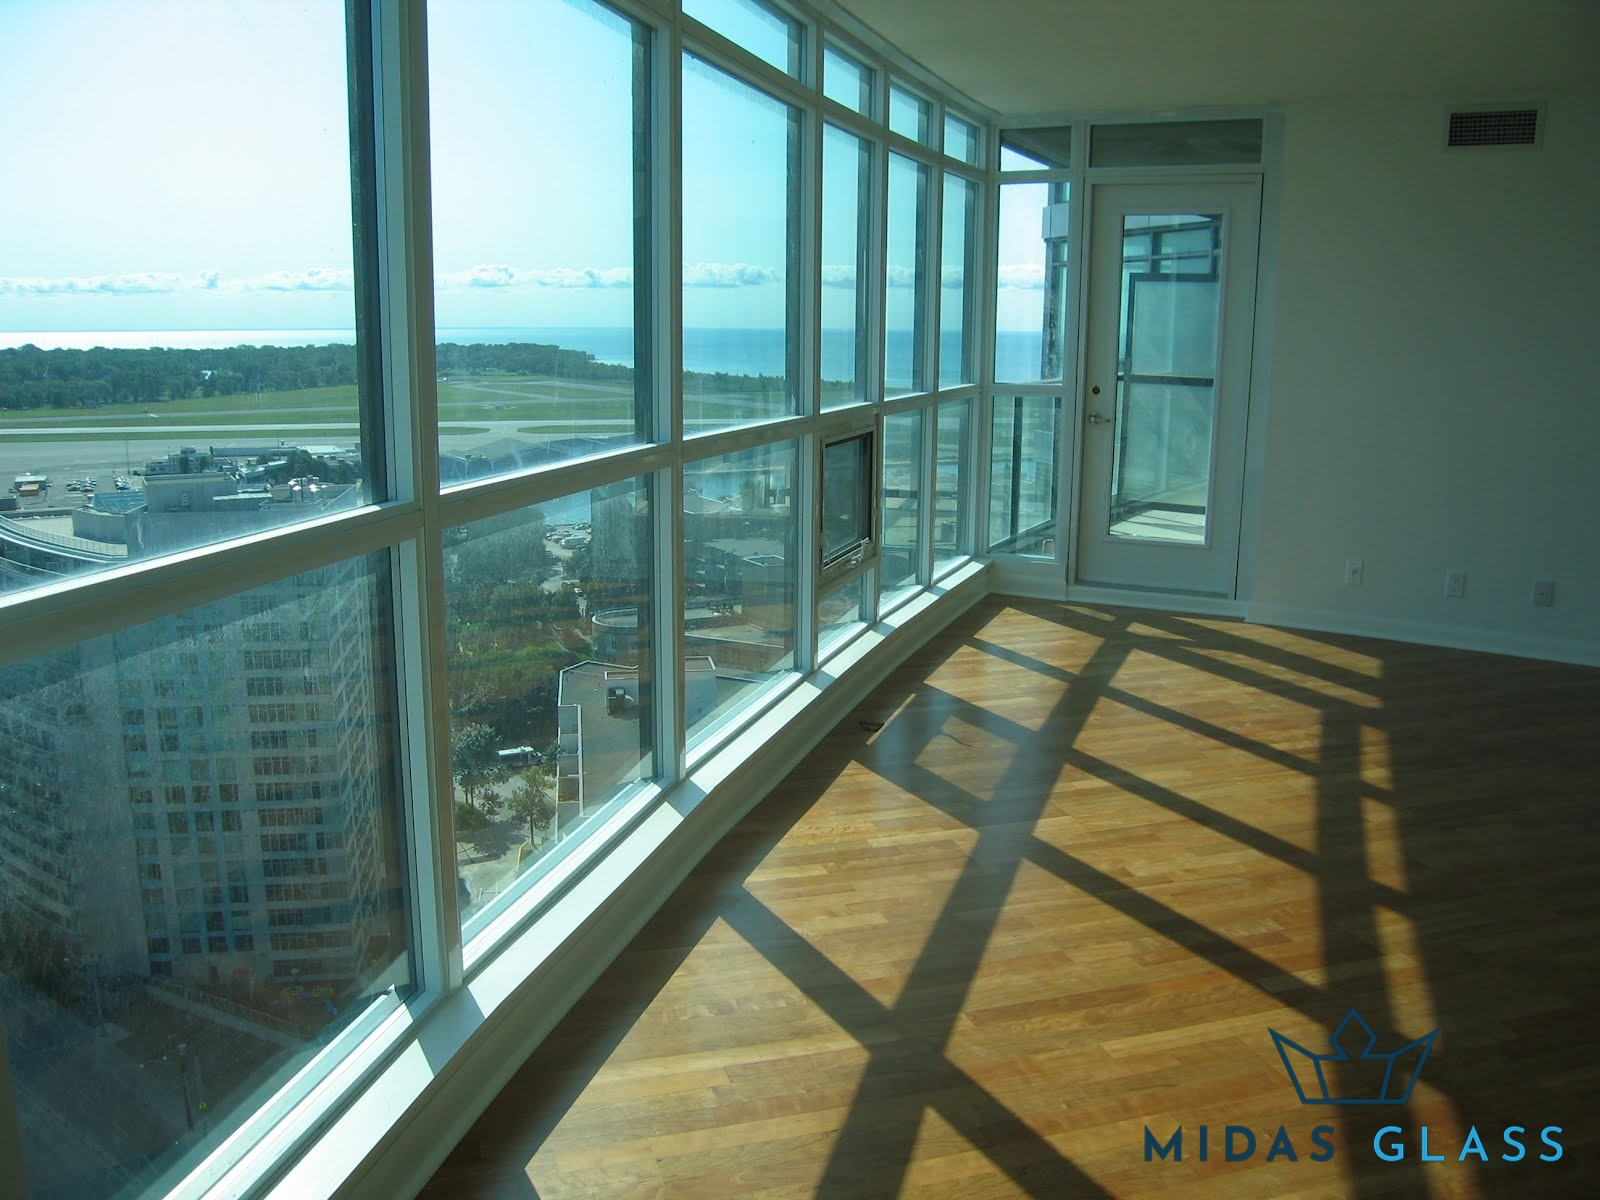 glass window midas glass contractor singapore